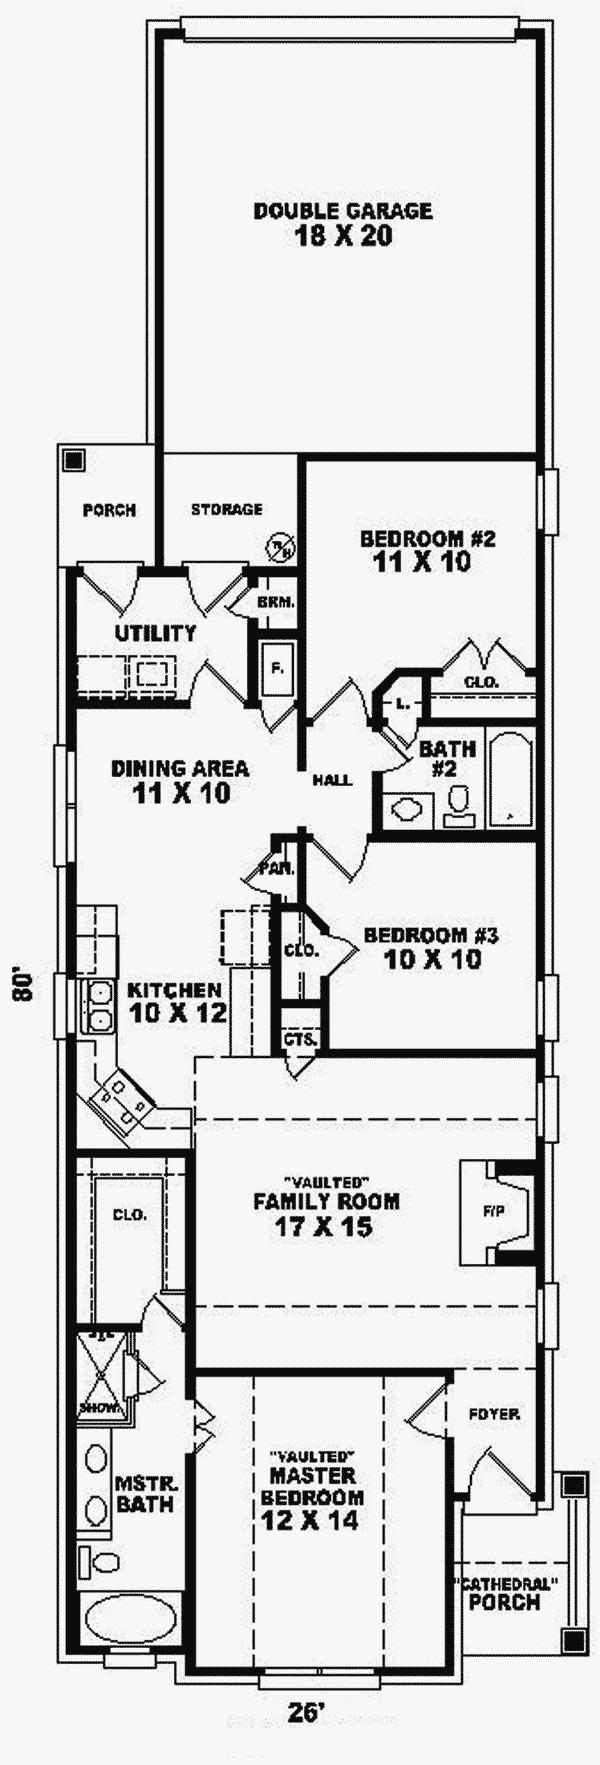 3 storey house plans for small lots best of travella e story home plan 087d 0043 of 3 storey house plans for small lots